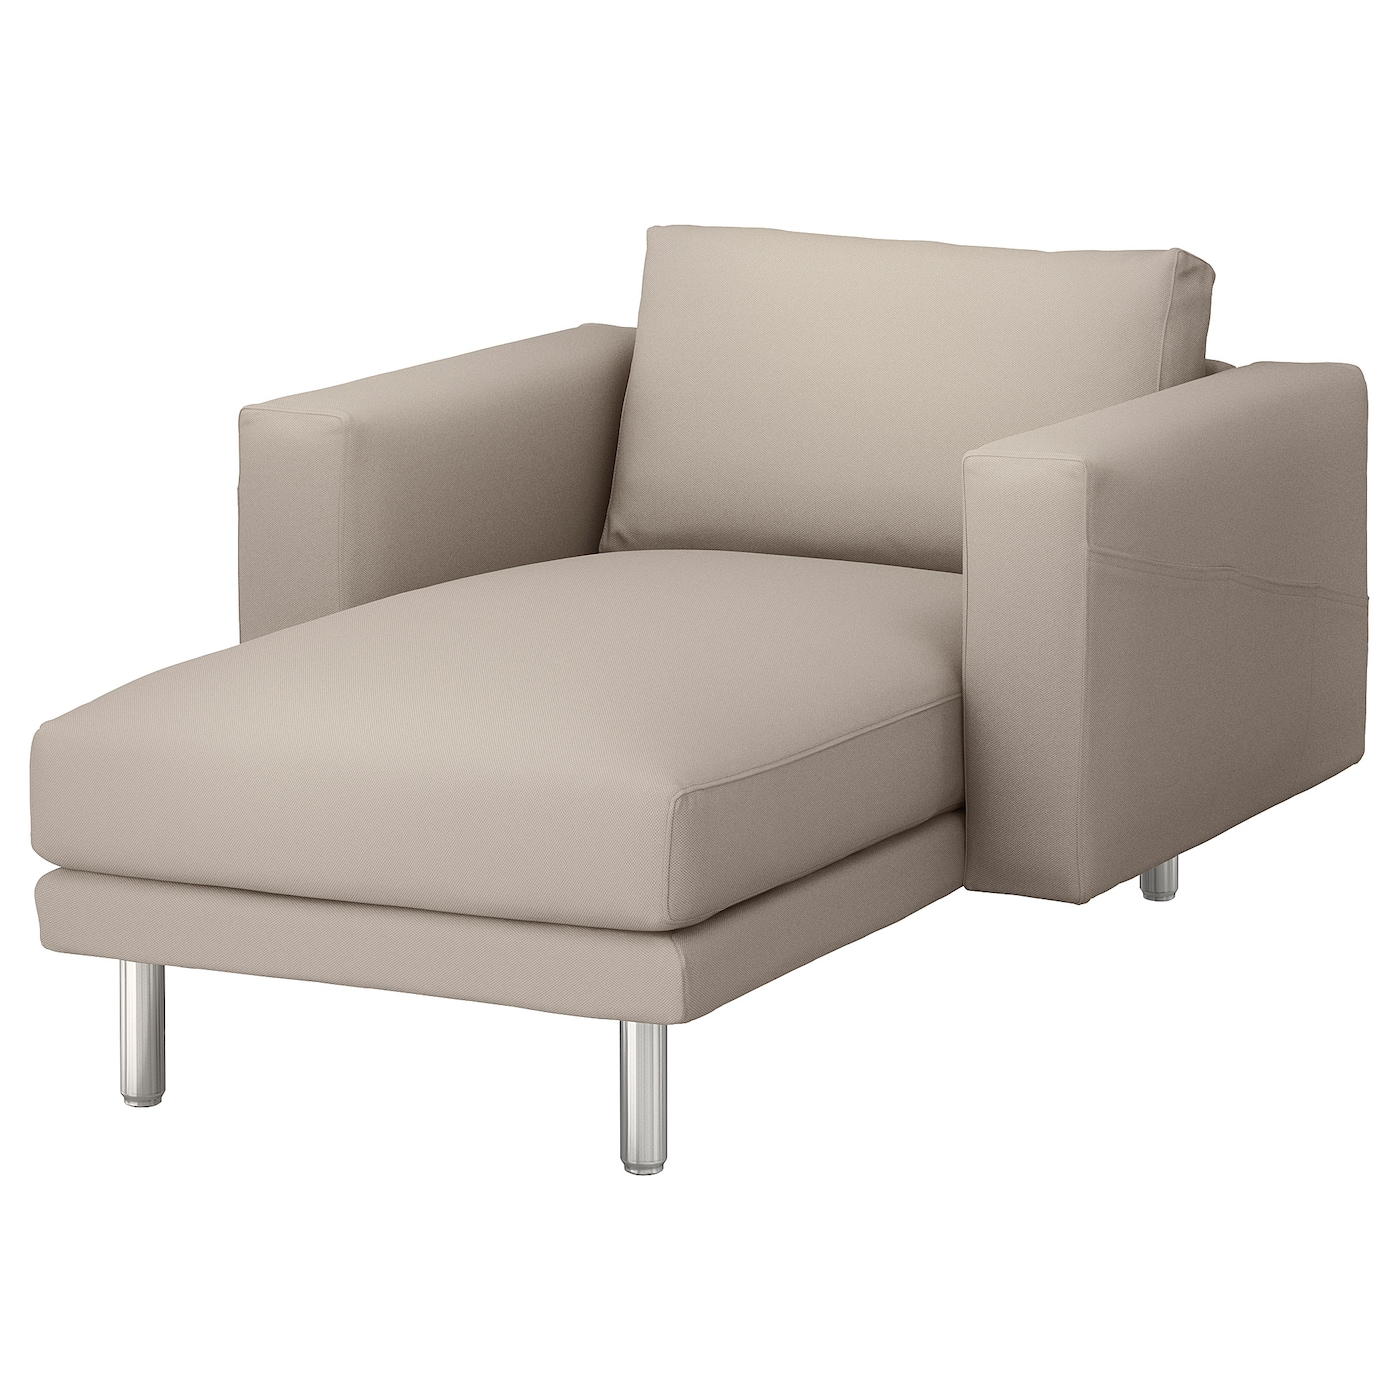 Chaise lounge sofa ikea images for Chaise longue or chaise lounge